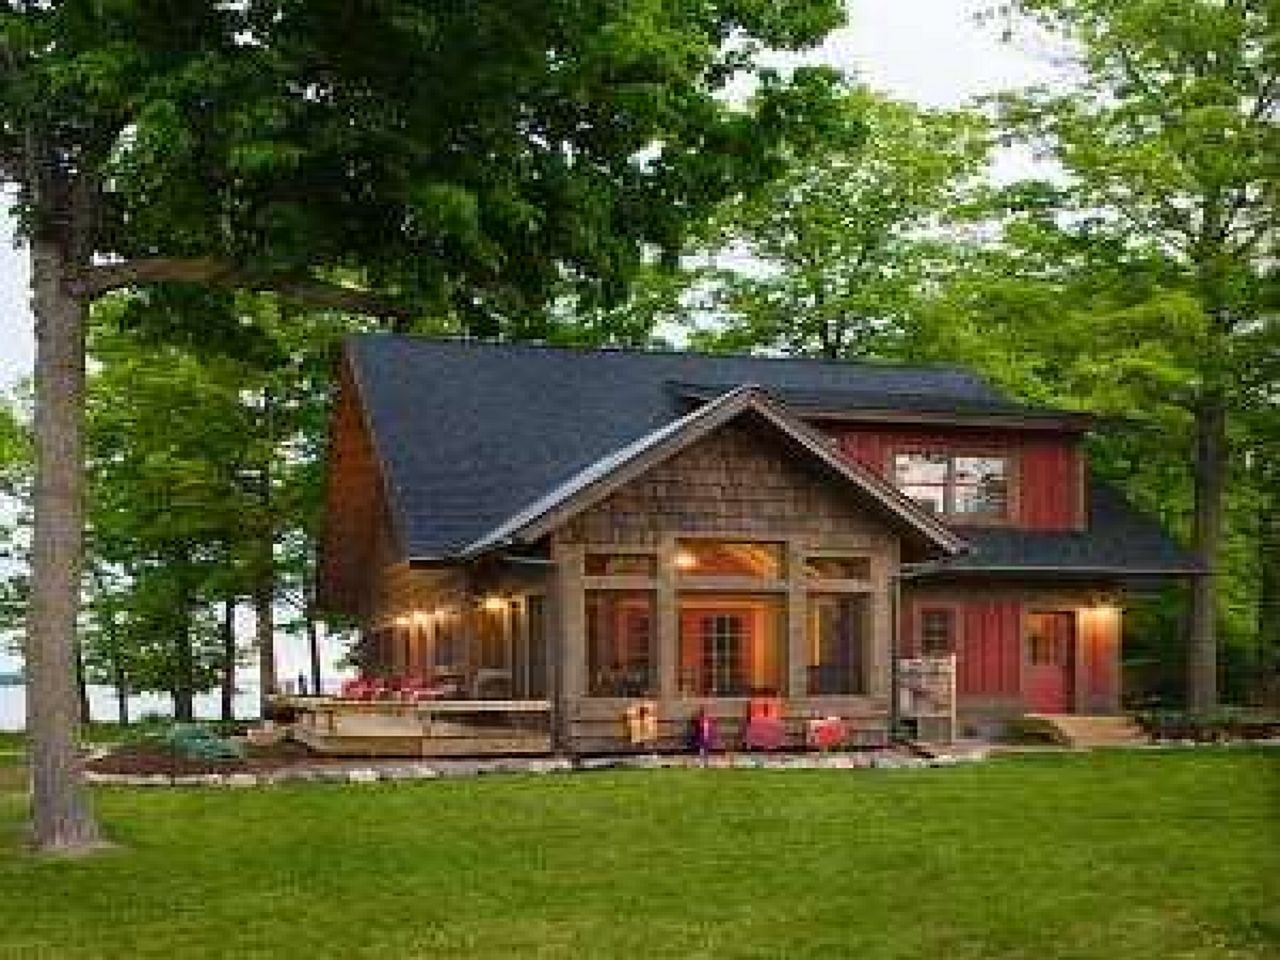 13 Unique Home Cabin Design For Best Cabin Inspiration Cabin Design Cabins And Cottages Lake House